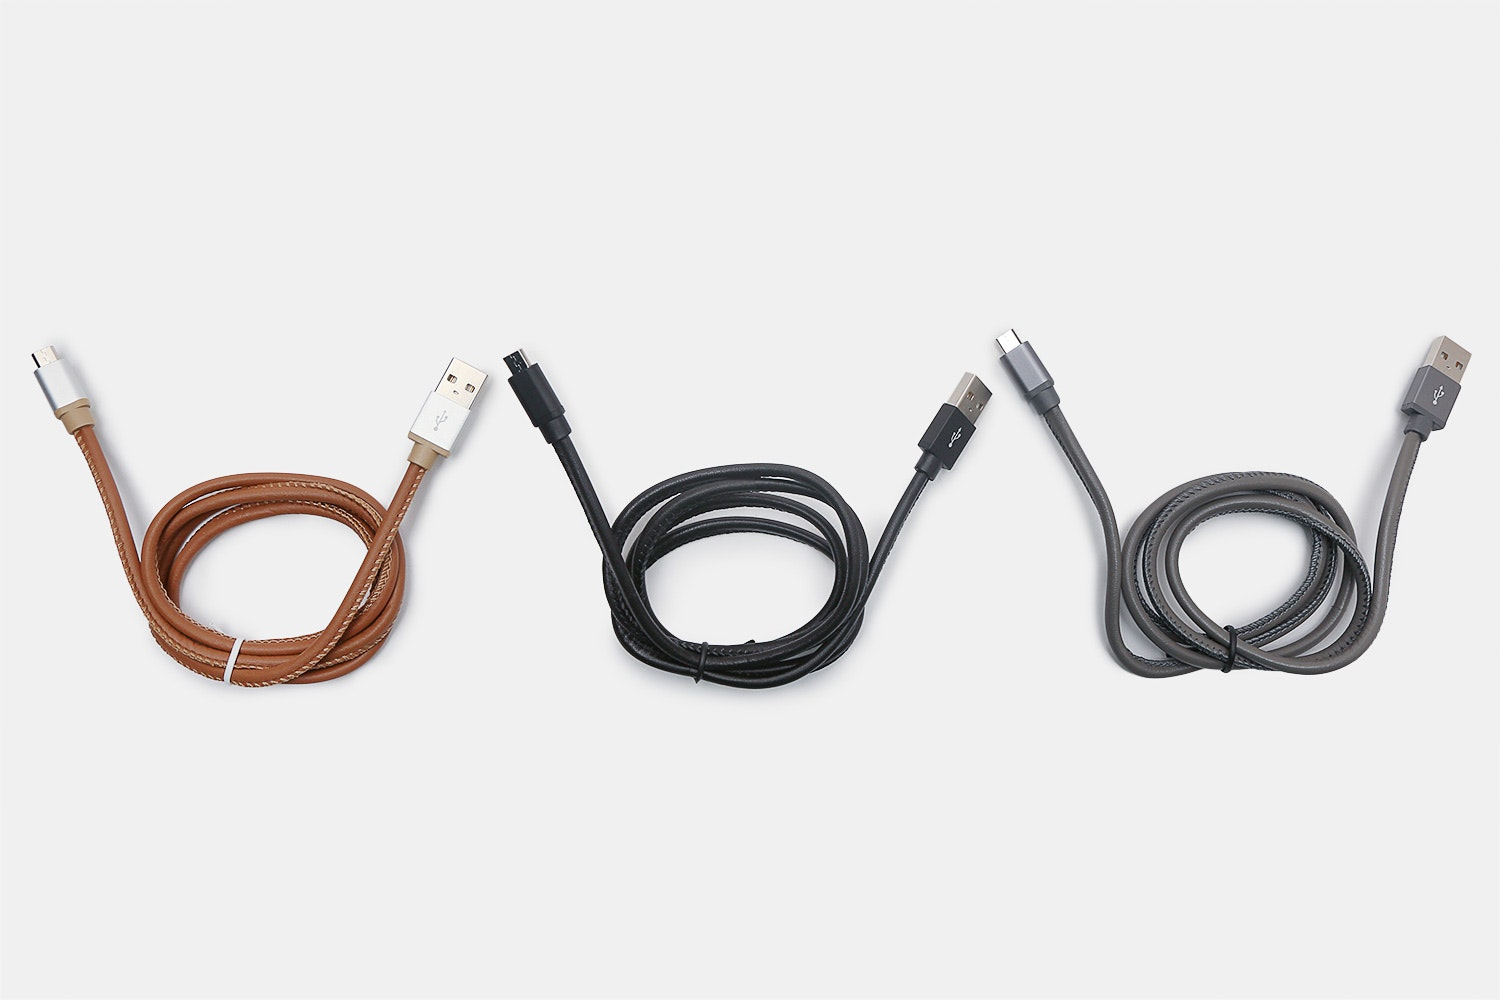 S.Taylor Genuine Leather Android & iPhone Cables